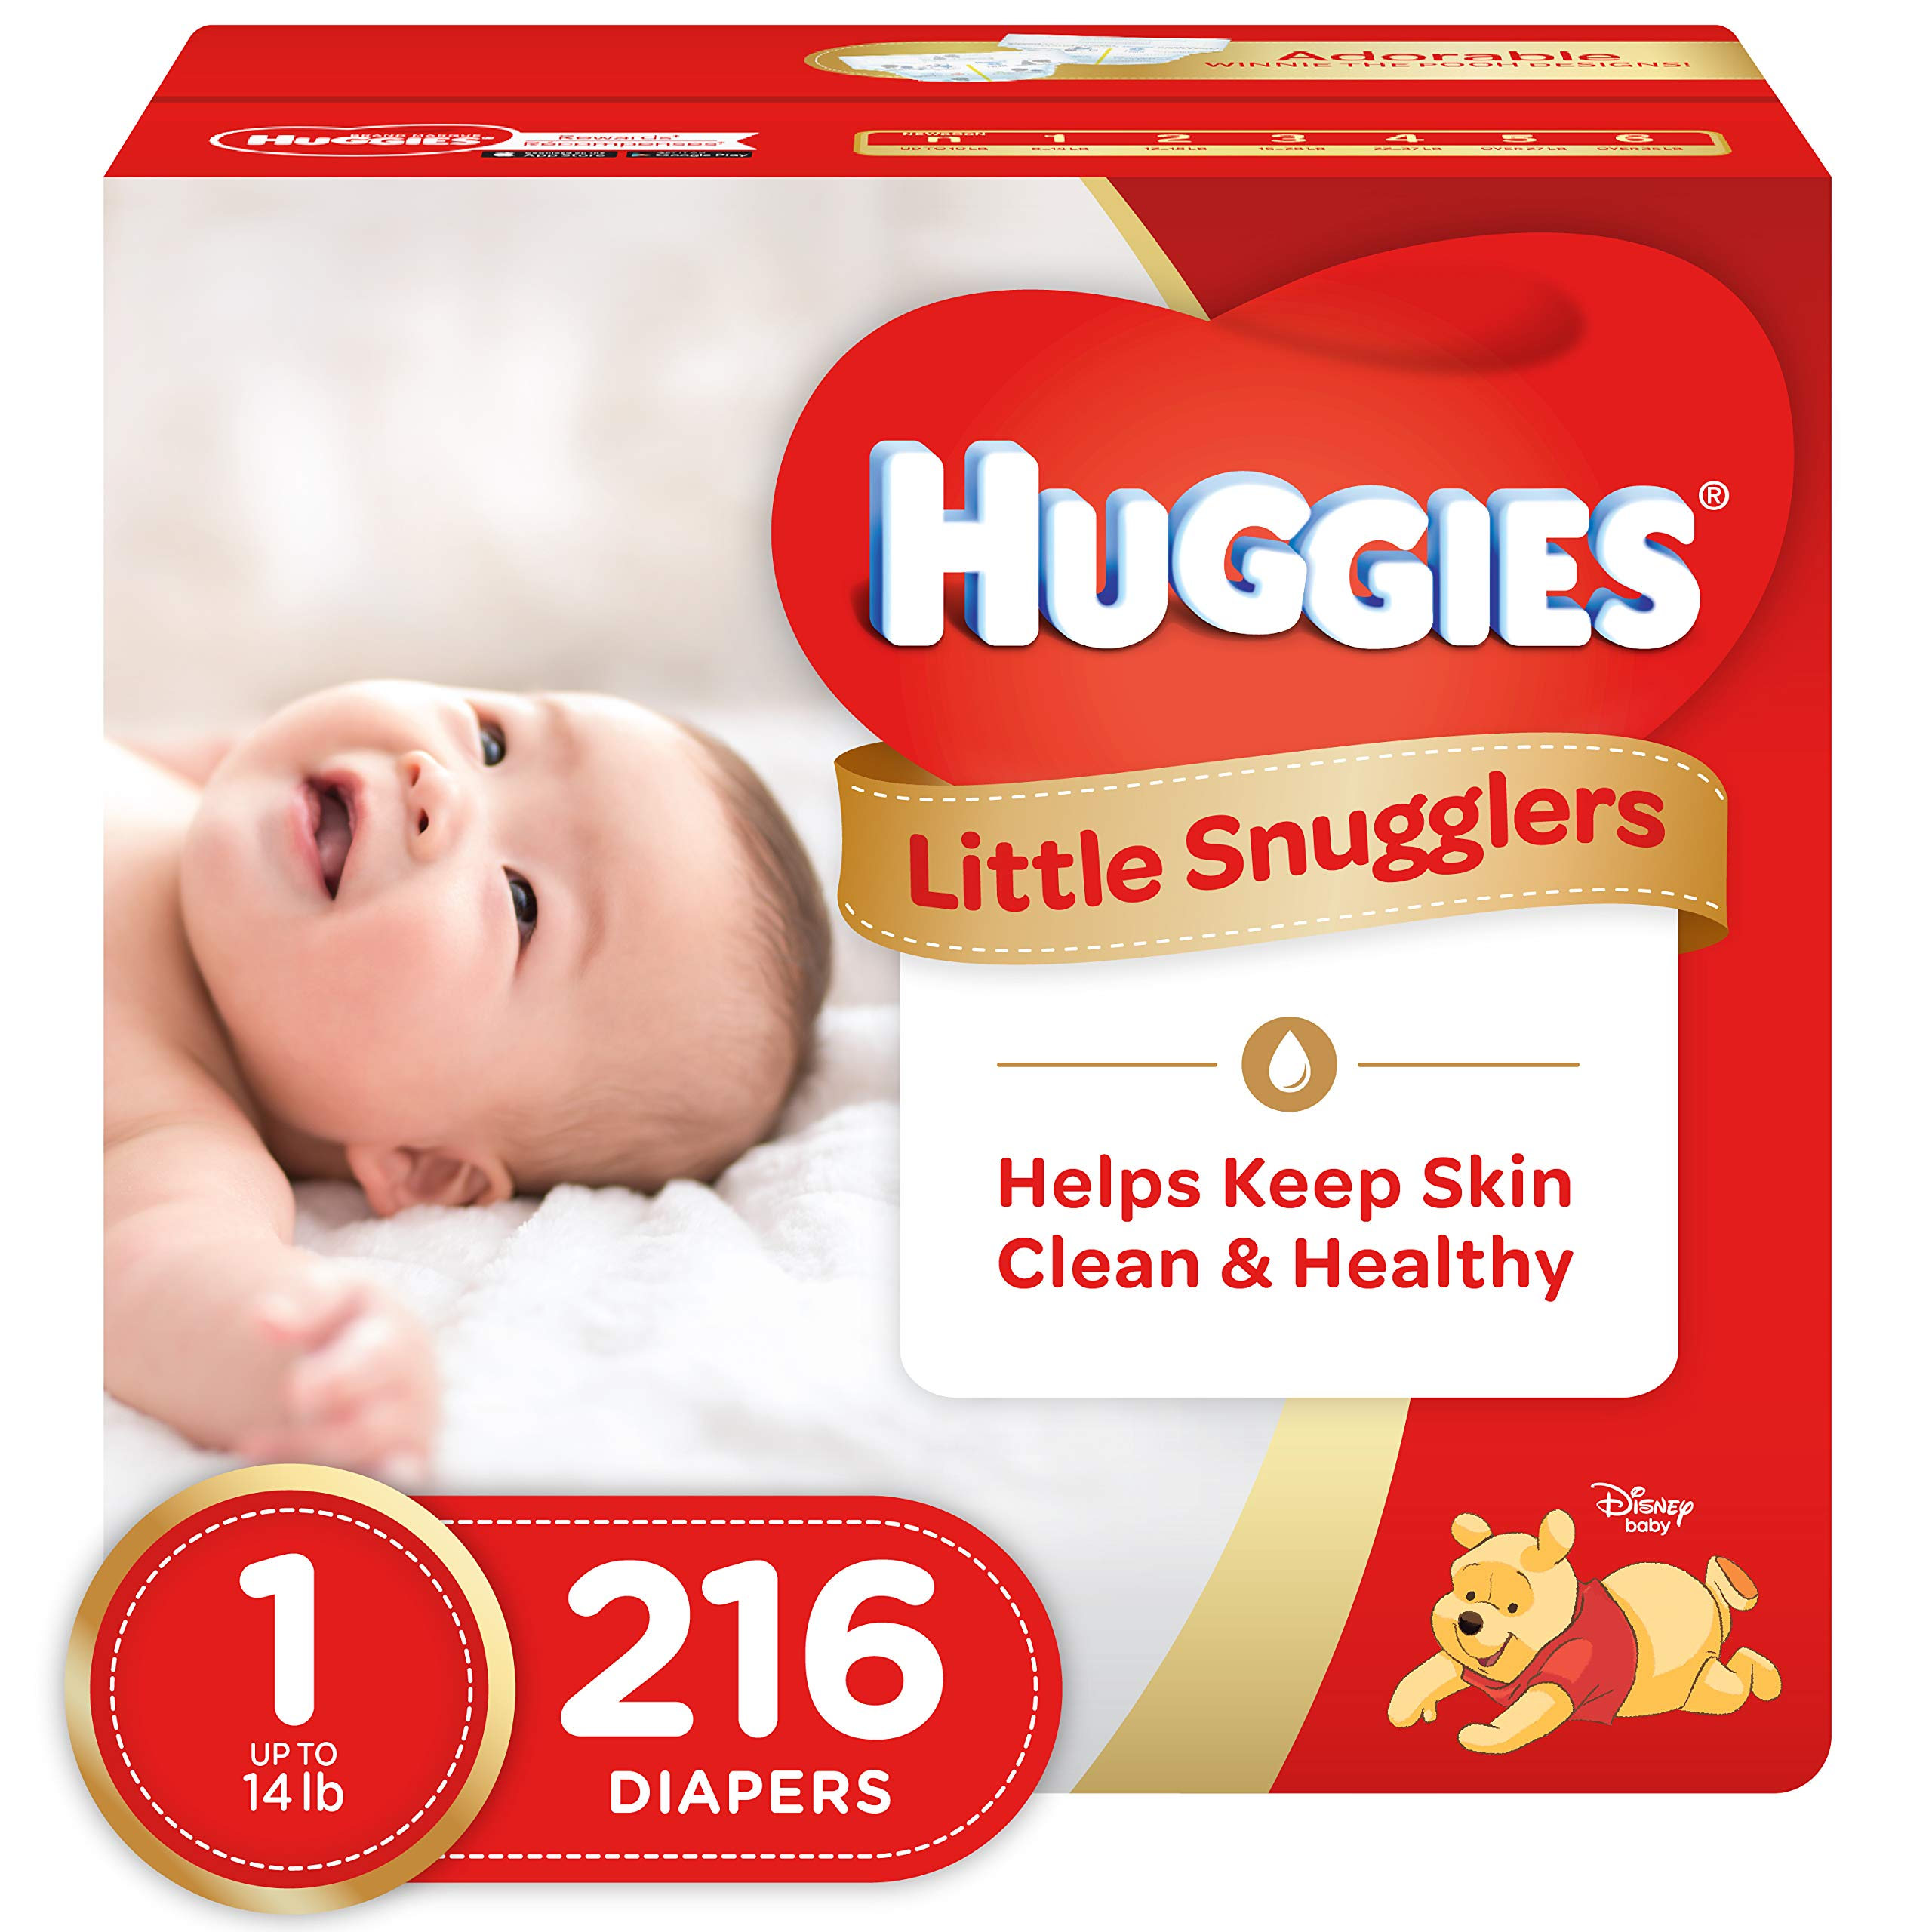 Huggies Little Snugglers Baby Diapers by HUGGIES